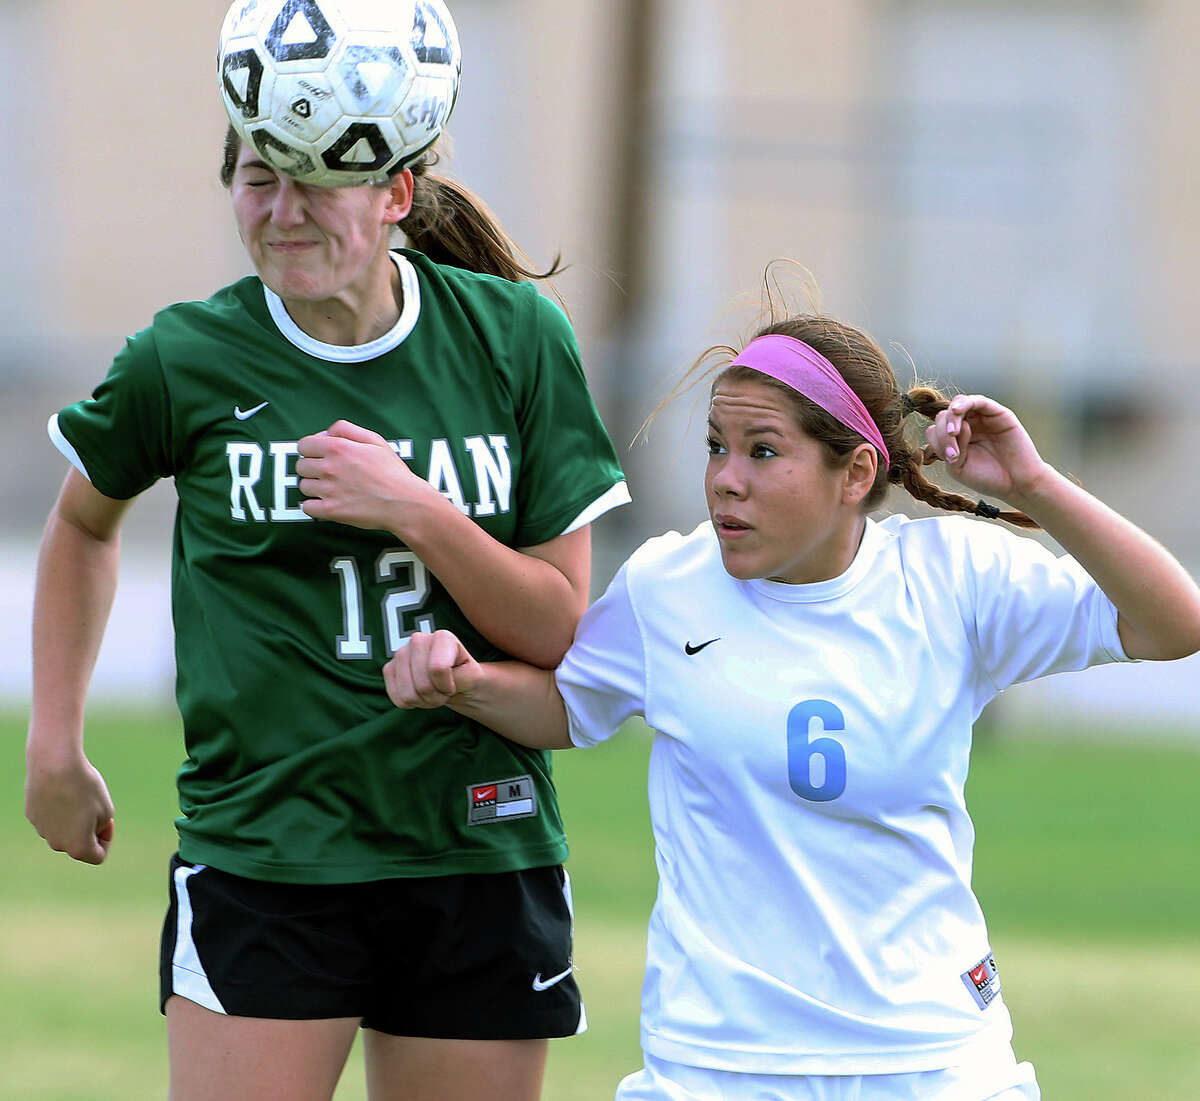 Reagan's Ashley Long bumps a pass in front of Erika Palacios as Johnson plays Reagan in a 26-5A girls soccer match at Northeast Soccer Stadium on March 14, 2014.